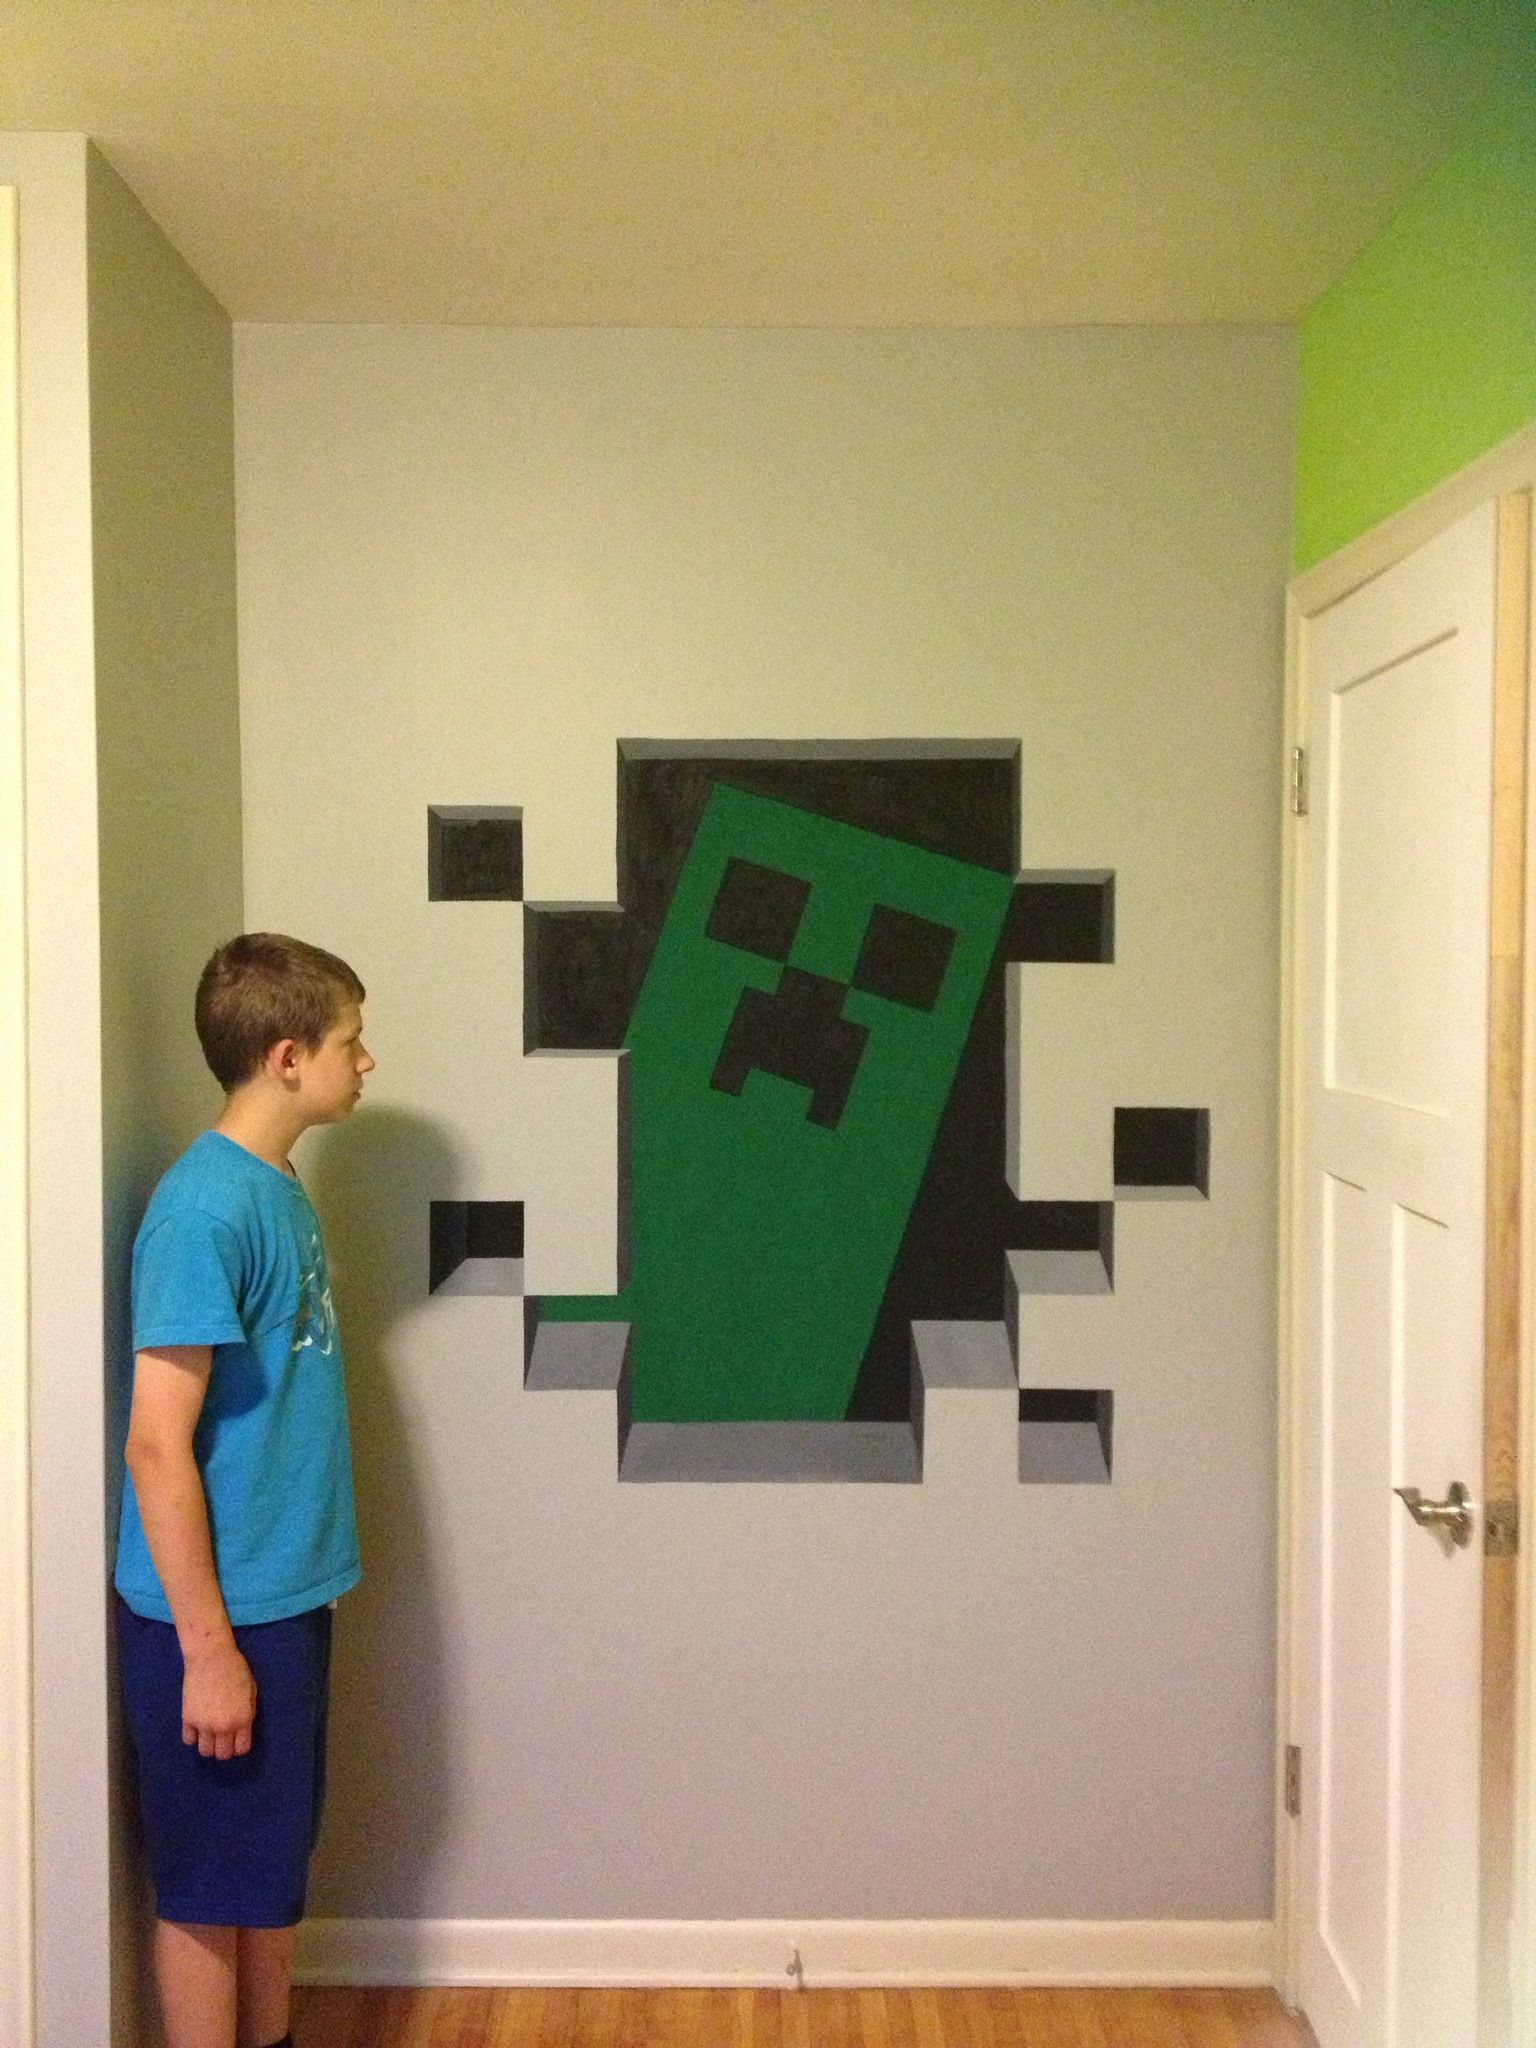 OH MY WORD, I NEED TO DO THIS right next to my door that I need to ...